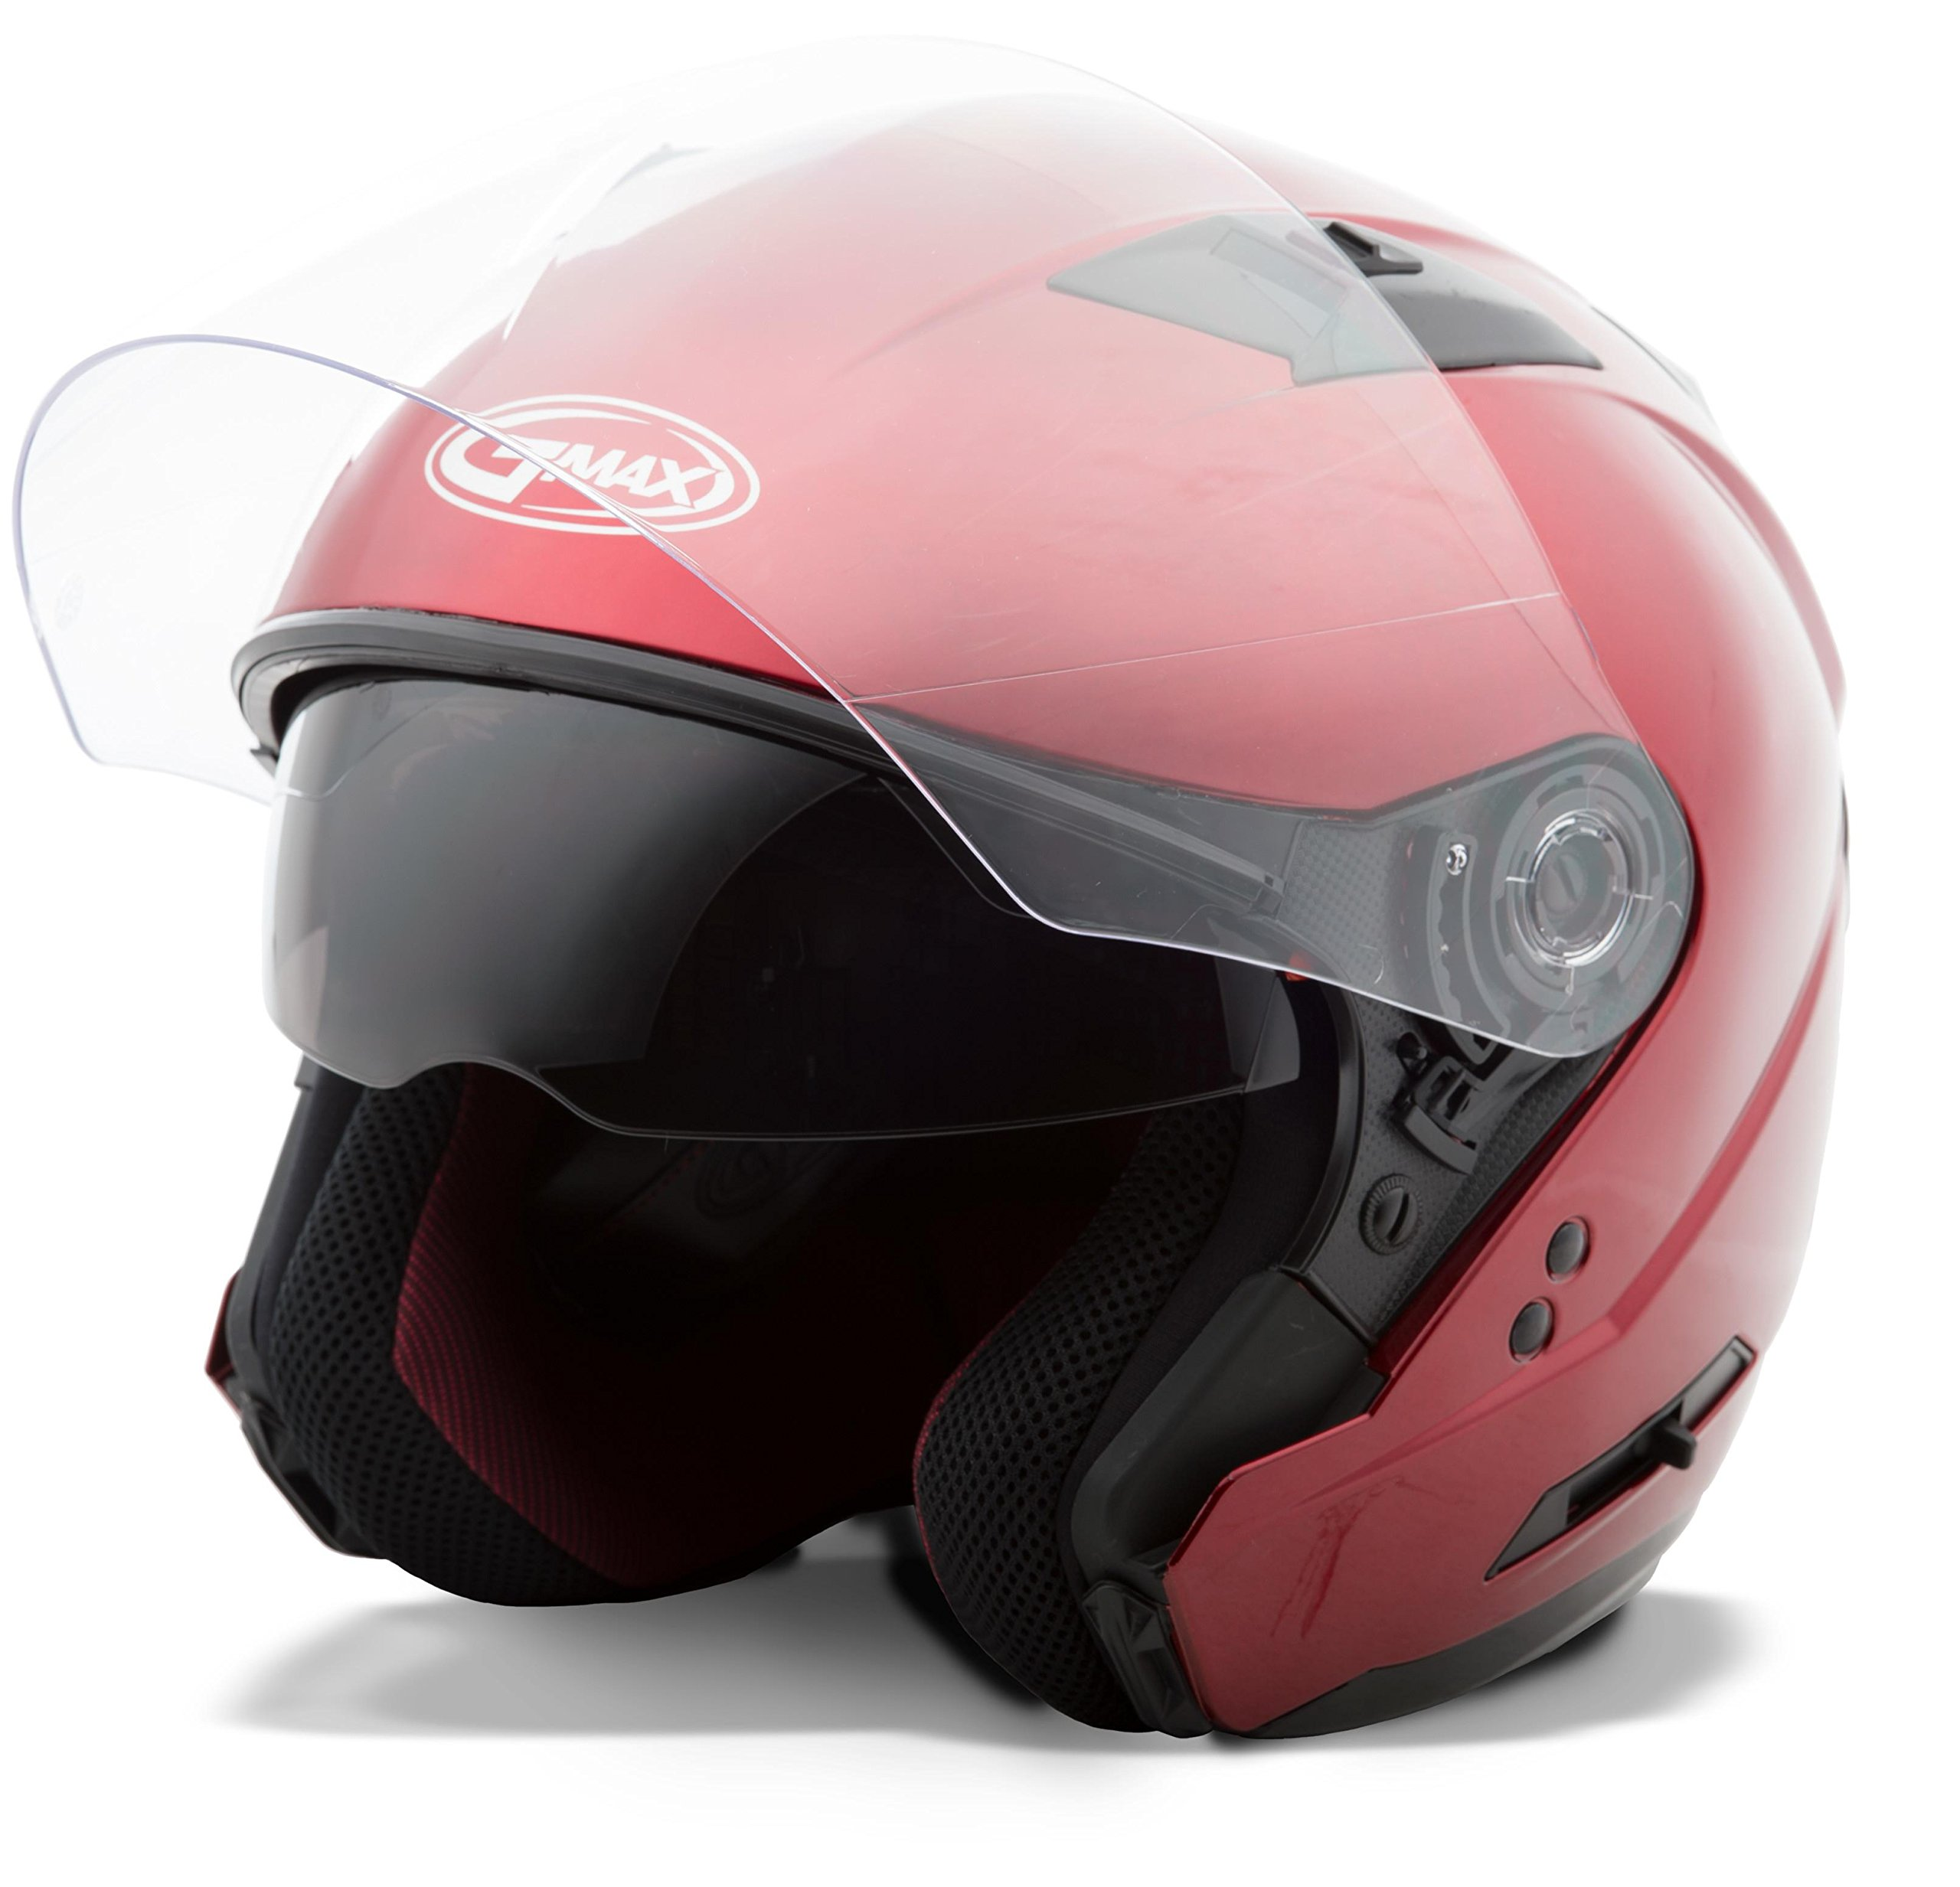 GMAX OF77 Mens Open Face Street Motorcycle Helmet - Candy Red 2X-Large